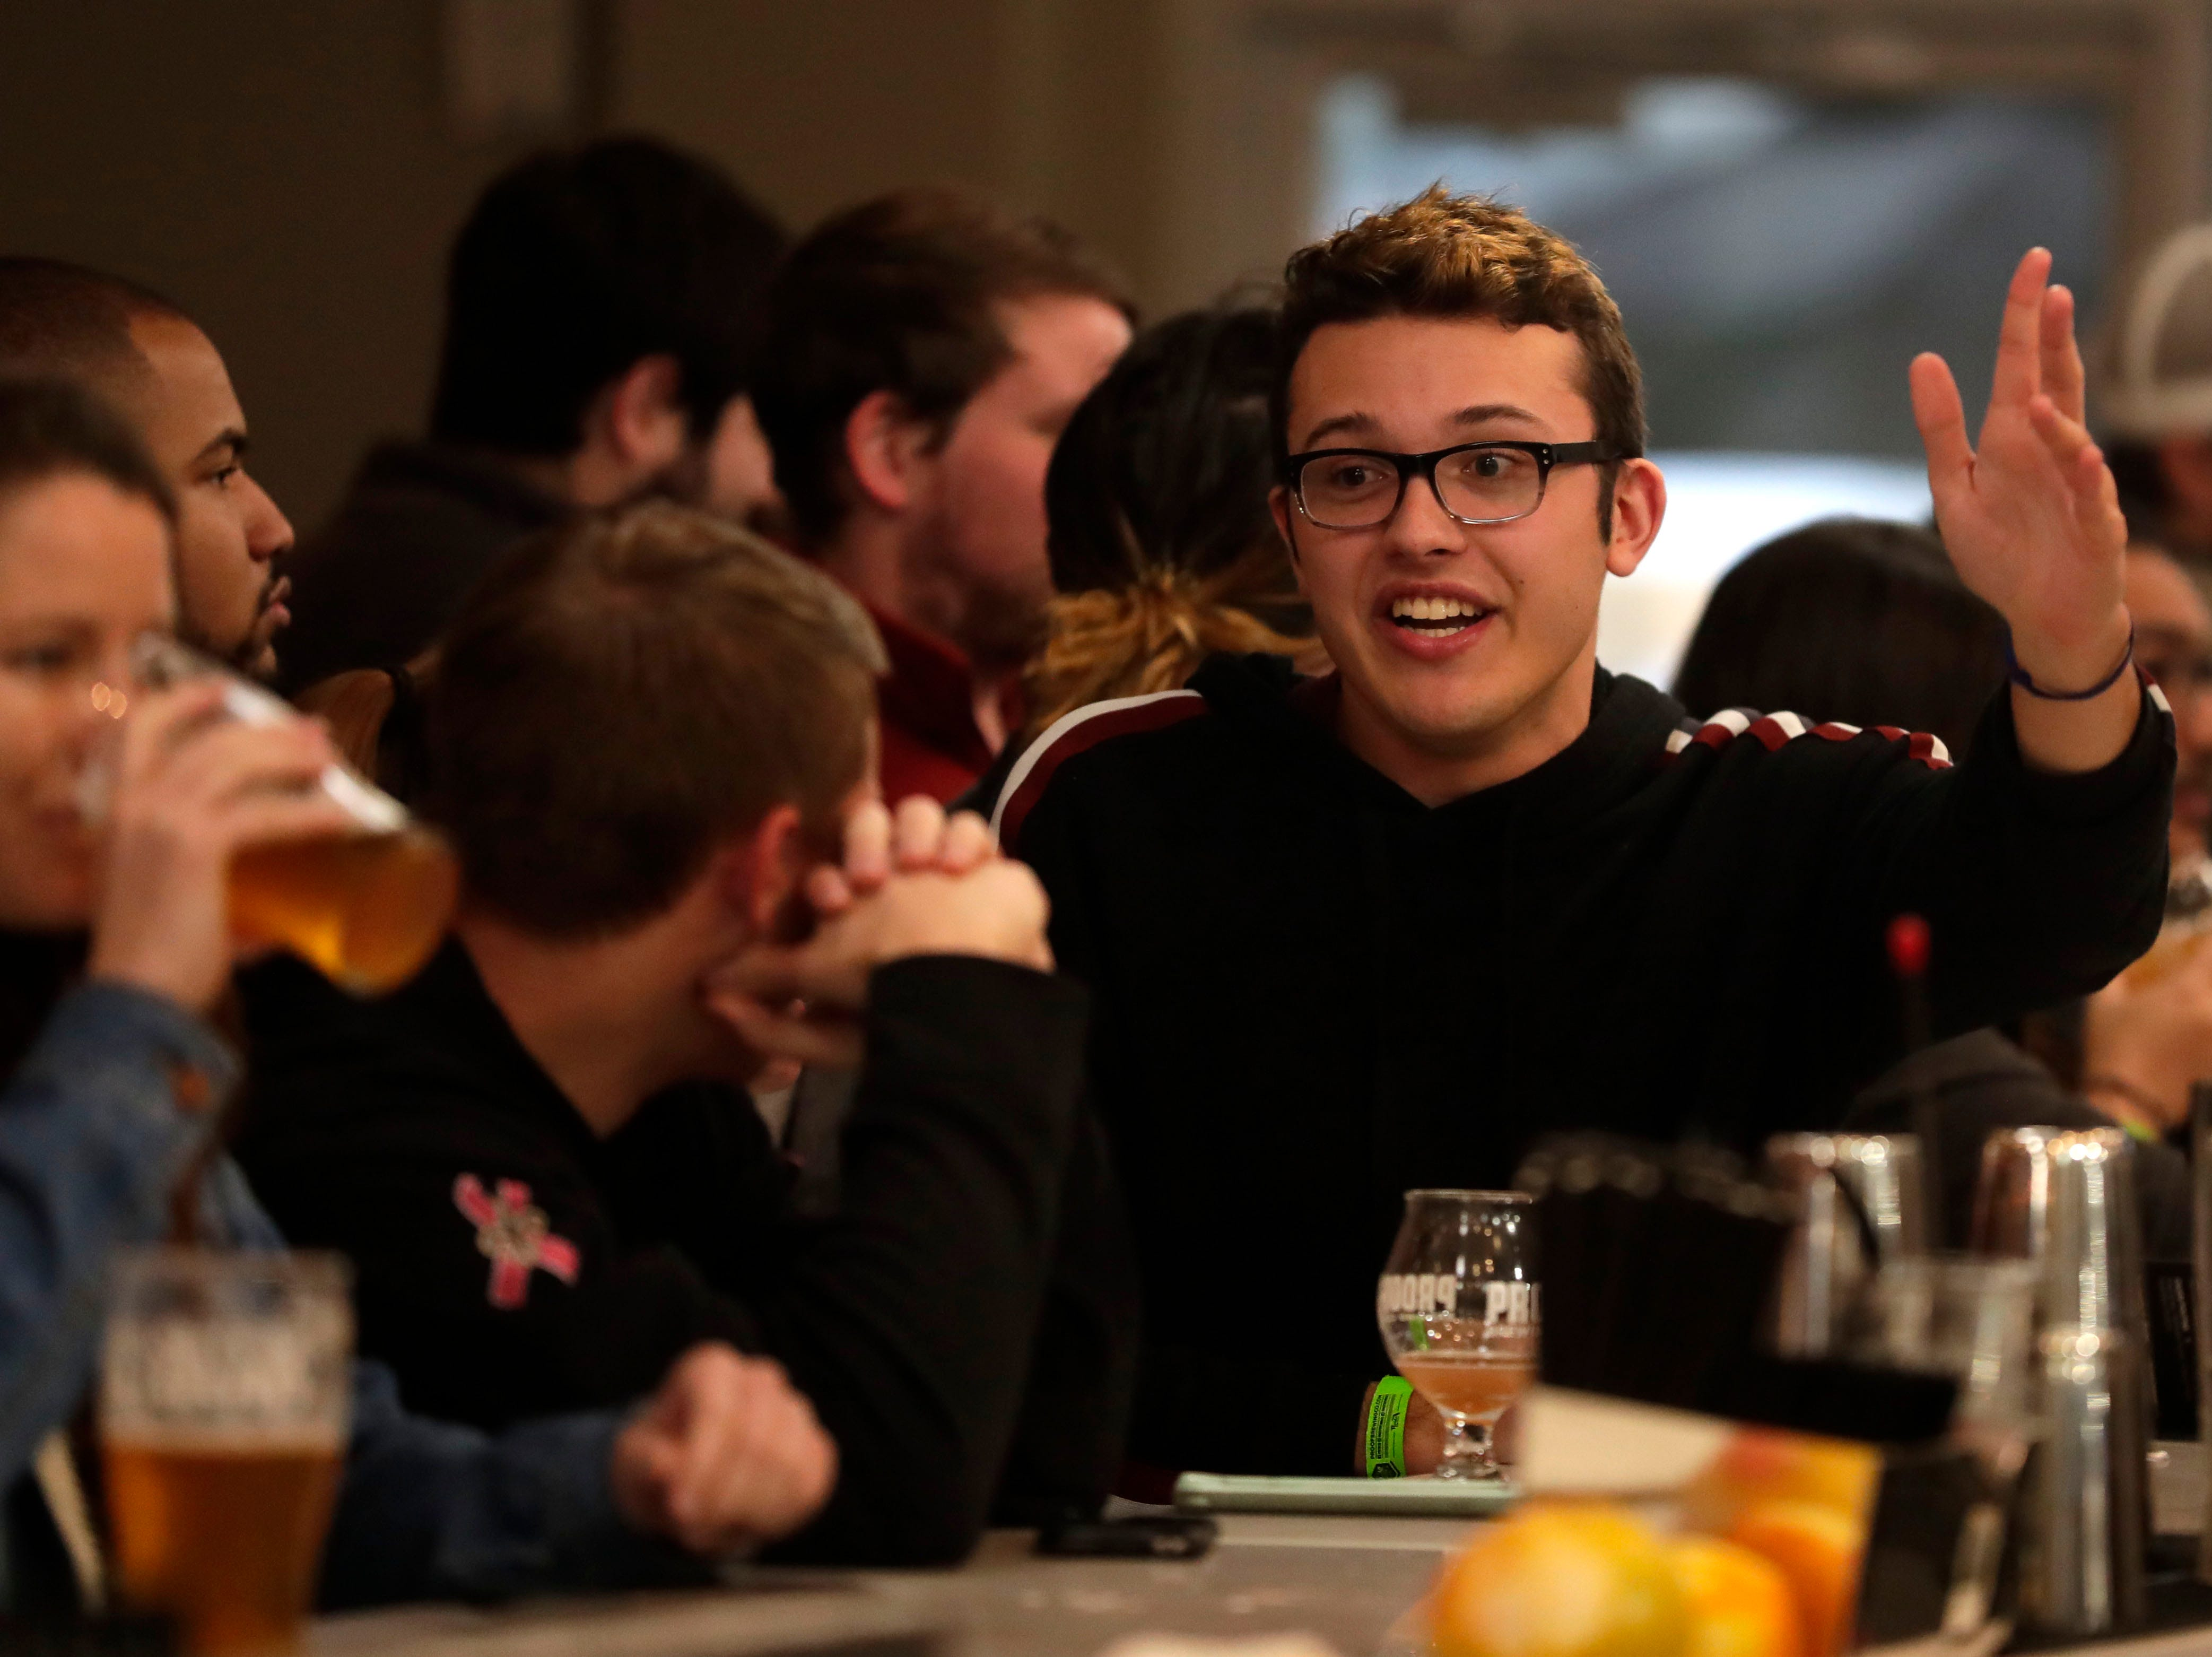 A young man talks with his friends while enjoying drinks at the bar of the new Proof Brewery during their soft opening, Friday, Feb. 1, 2019.